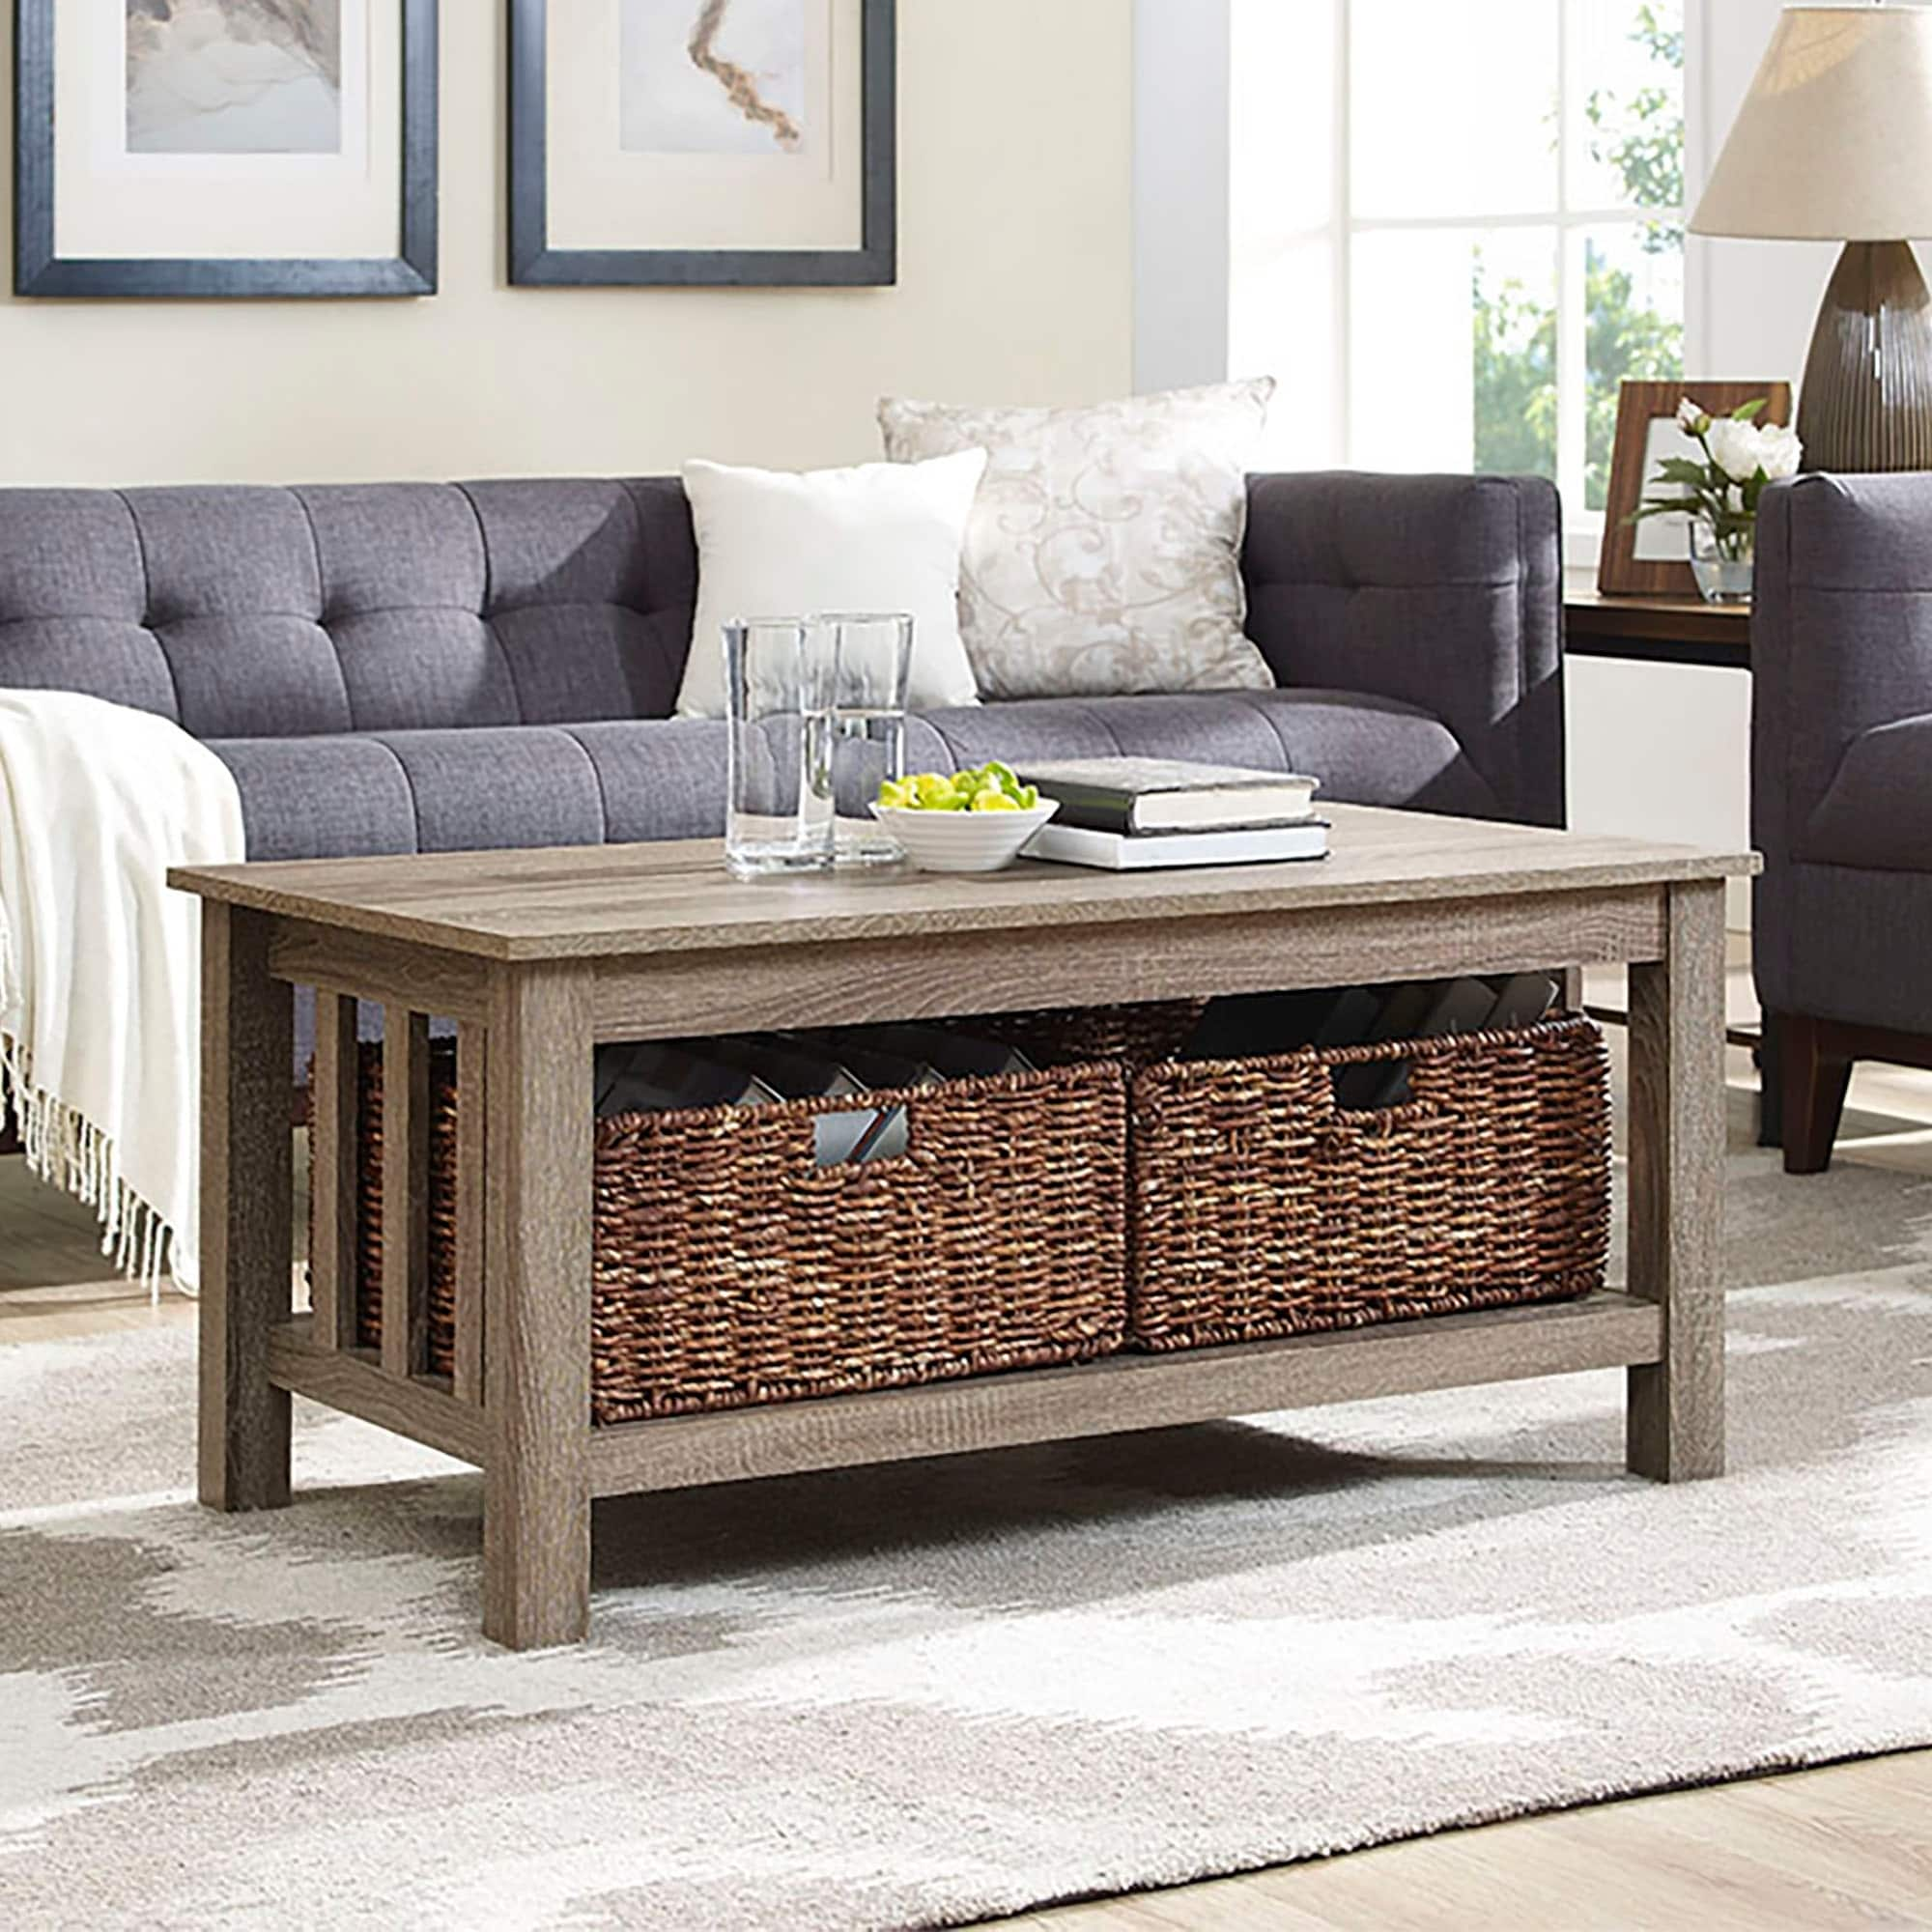 Middlebrook Designs 40-inch Coffee Table with Wicker Storage Baskets,  Driftwood, Rustic Living Room Table - 40 x 22 x 18h